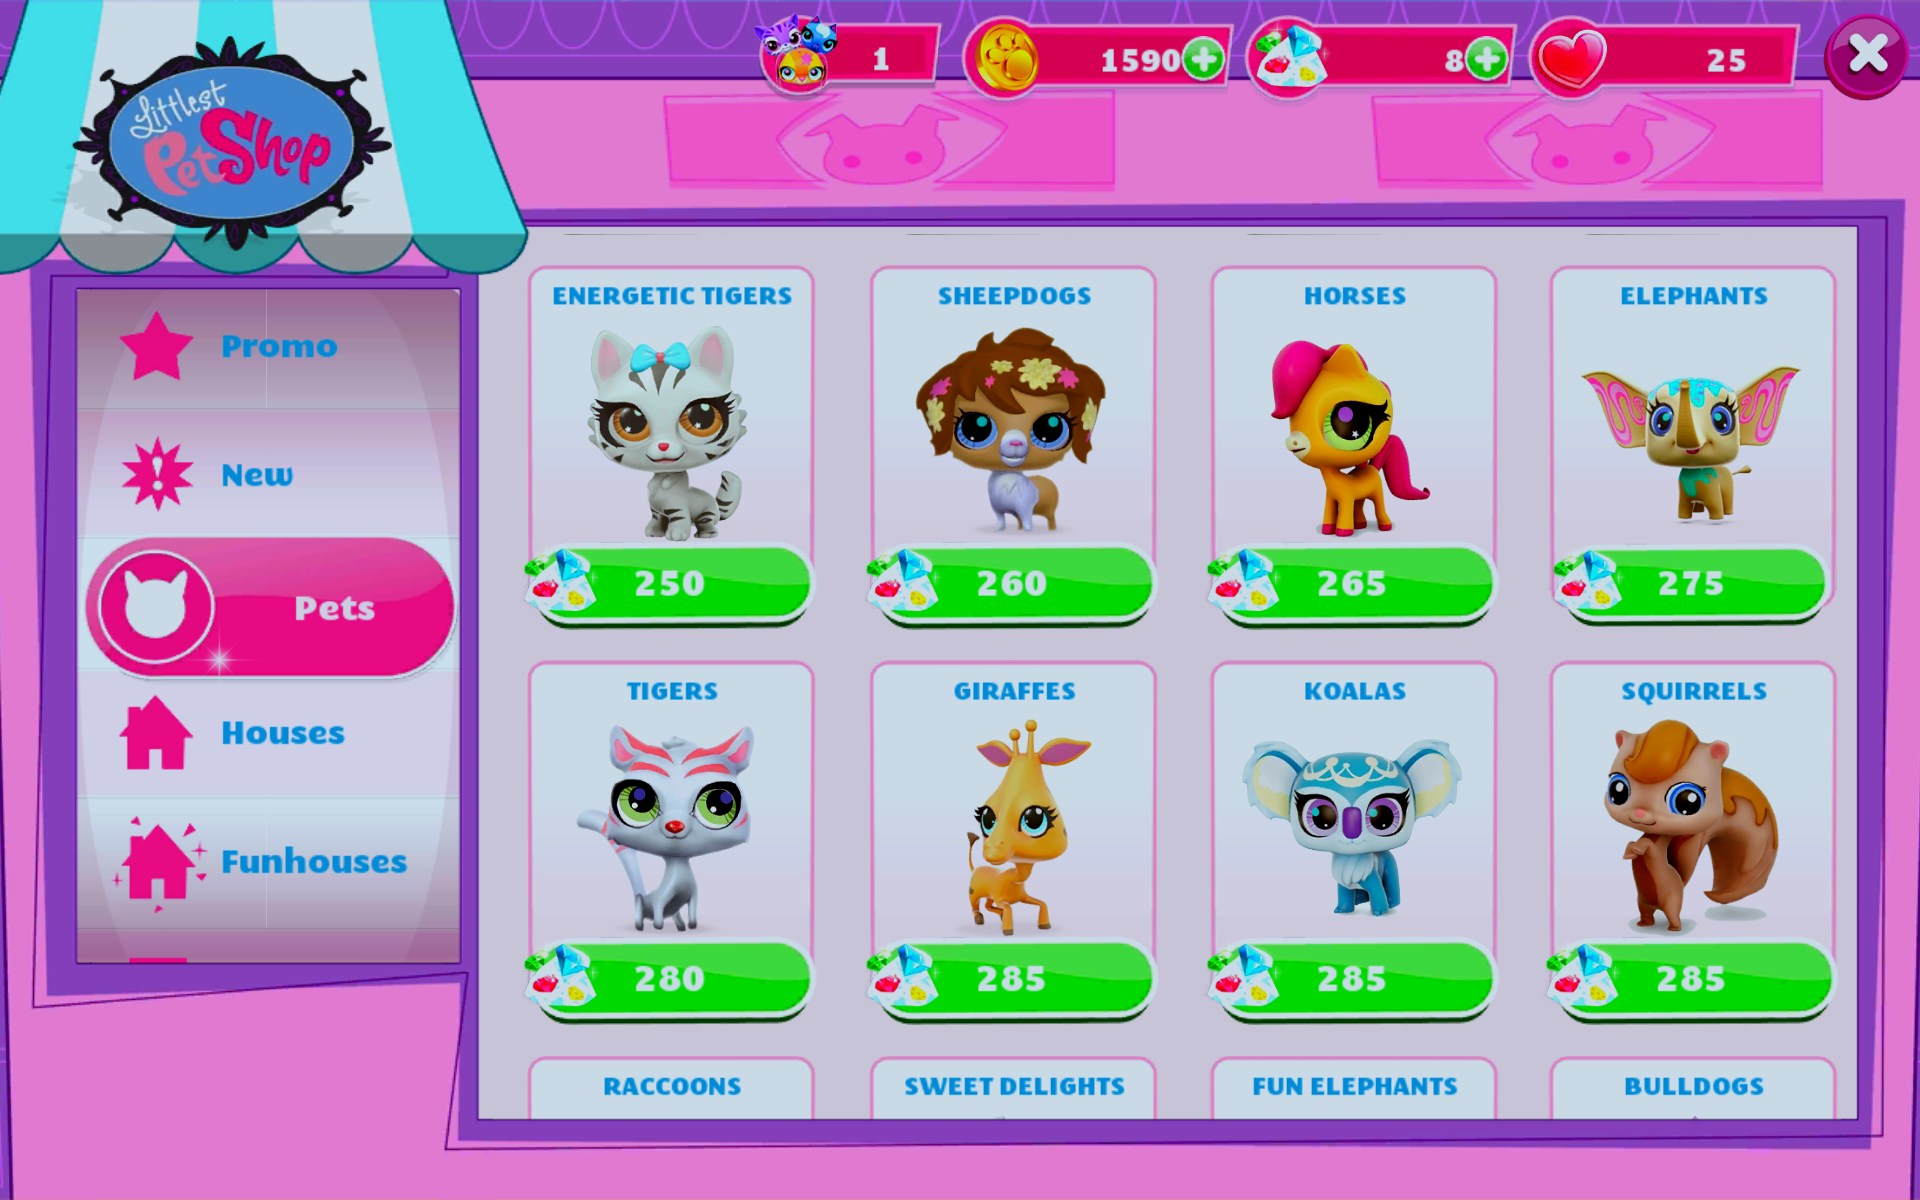 Littlest Pet Shop is a mobile app created by Gameloft. It is avalable on iPhone, IOS and Android. The subject of the game is to make a town of pets (and only pets) and take care of them all by tending to their needs and expanding the town.